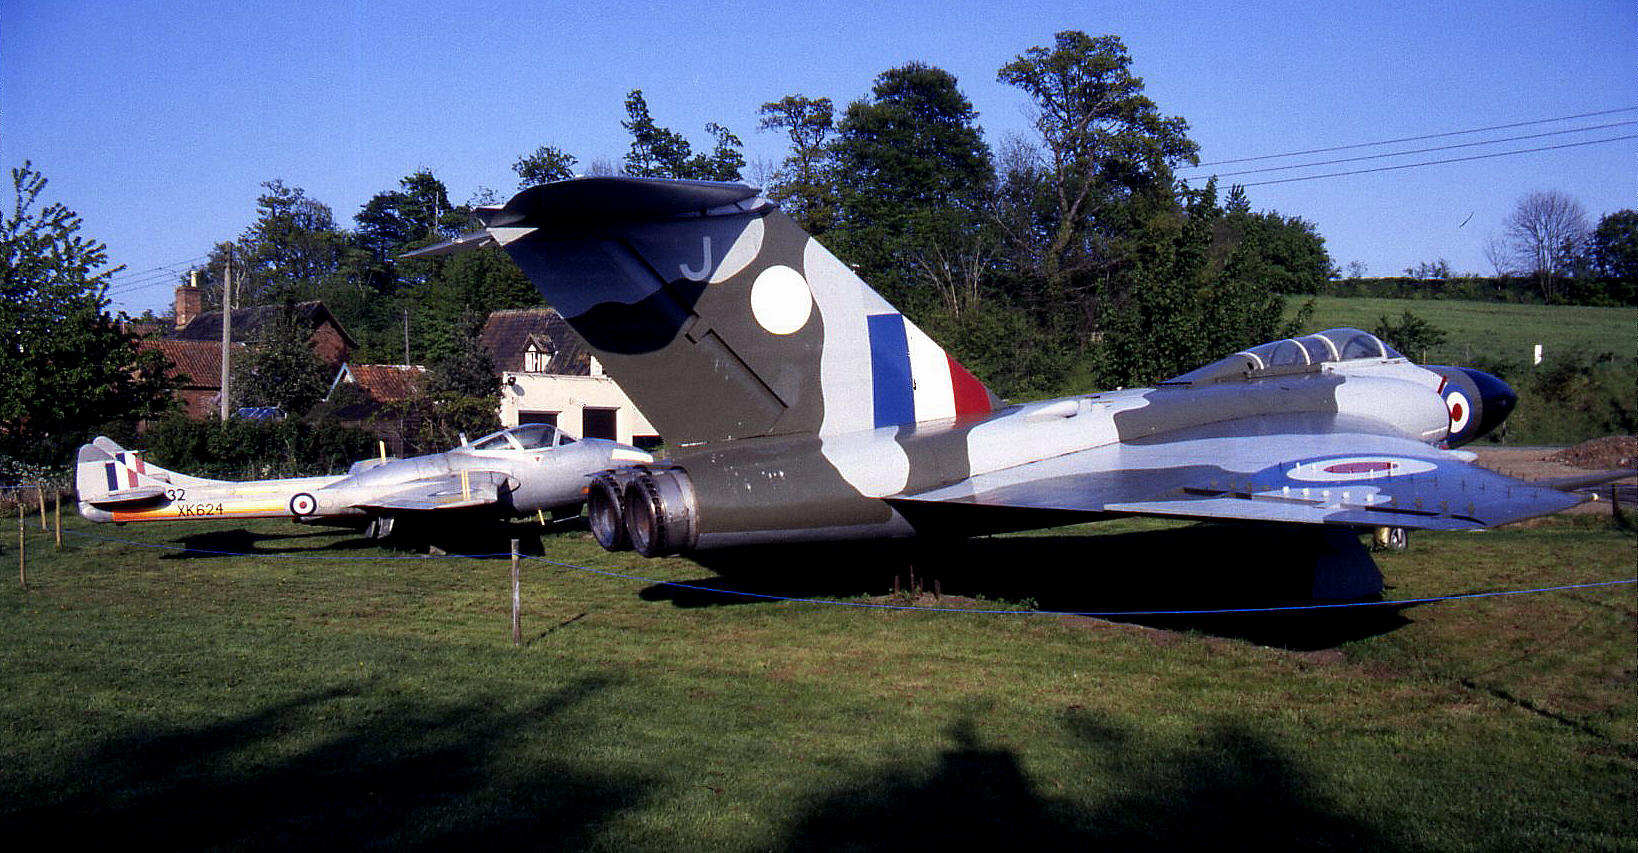 The Gloster Javelin FAW.9R (XH892) with the DH Vampire T.II (XK624) behind